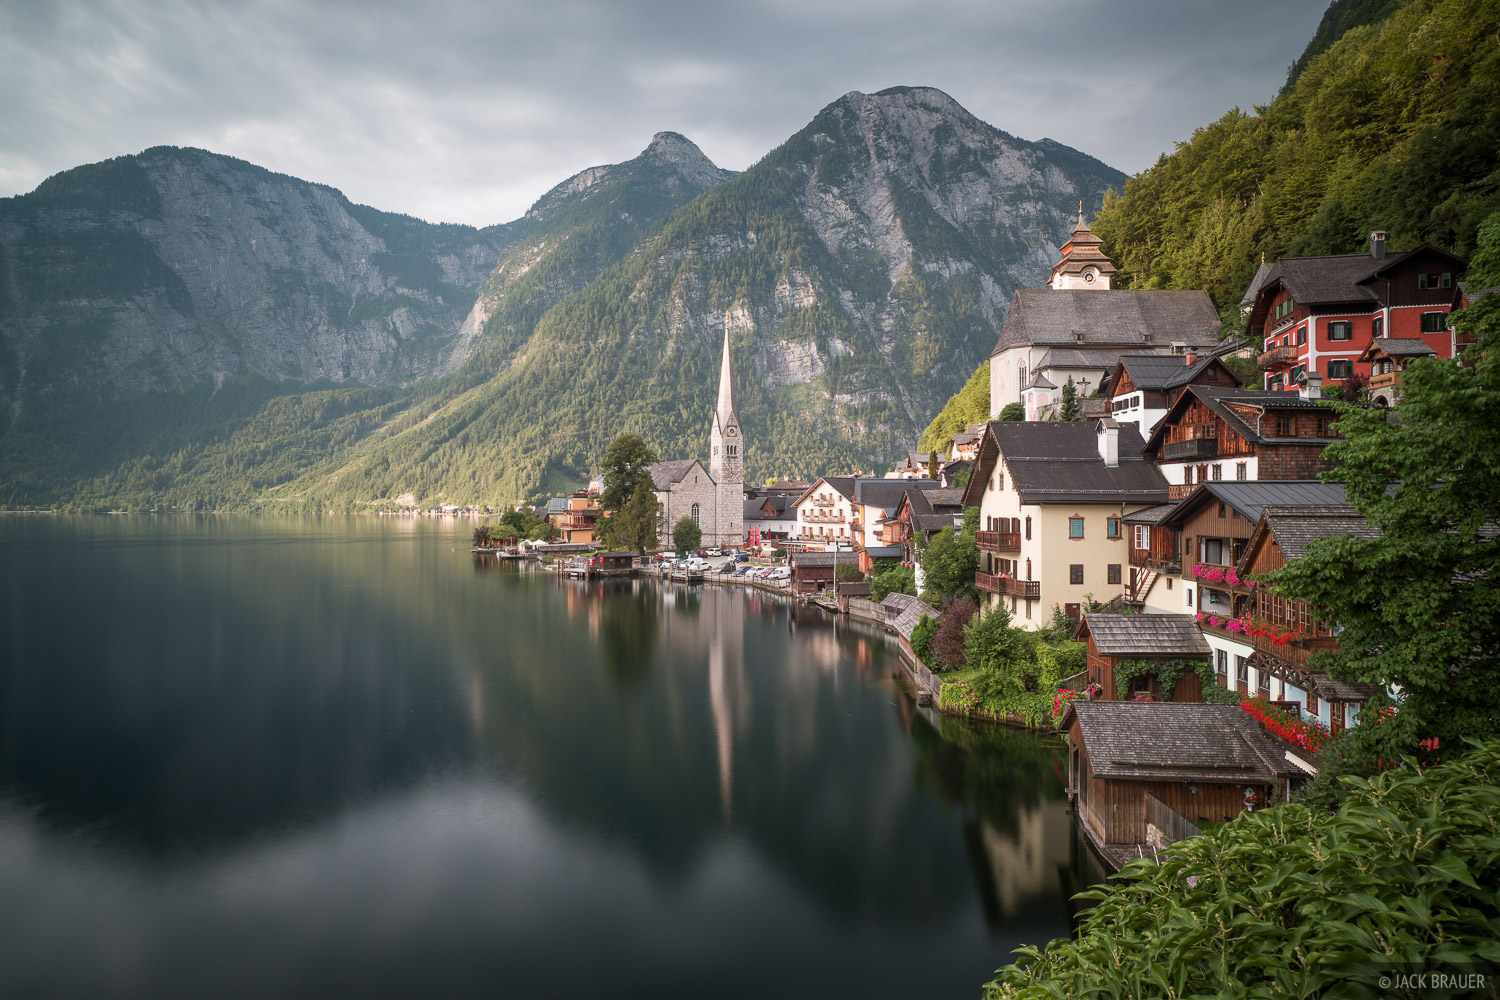 Austria, Dachstein, Hallstatt, reflection